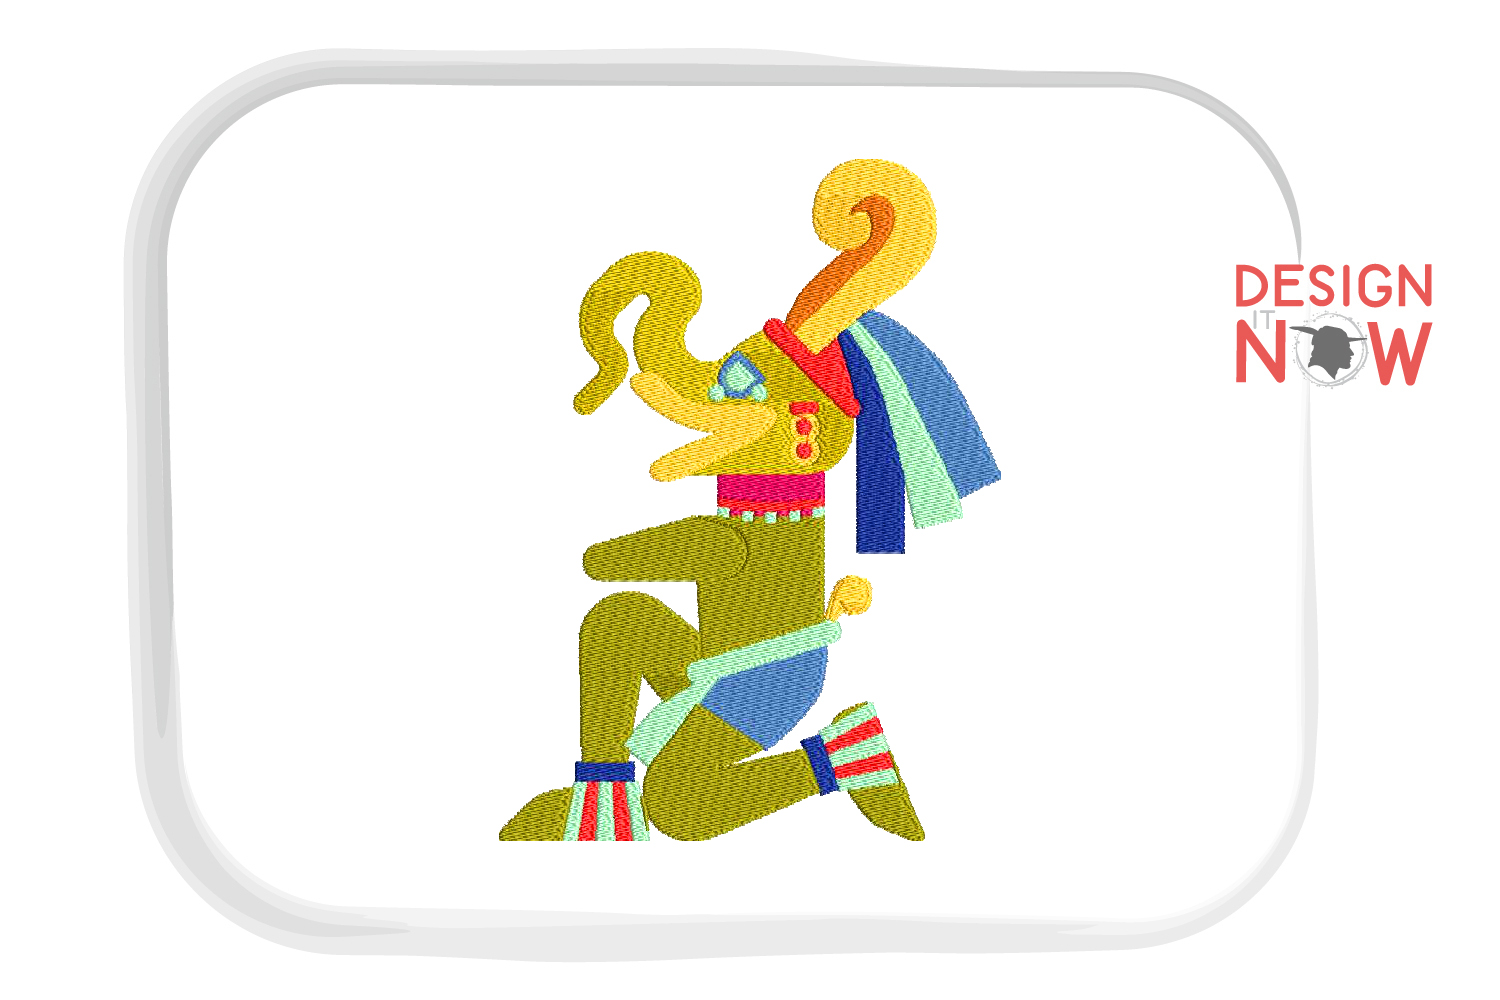 Aztec Culture Embroidery, Mayan Embroidery, God example image 2